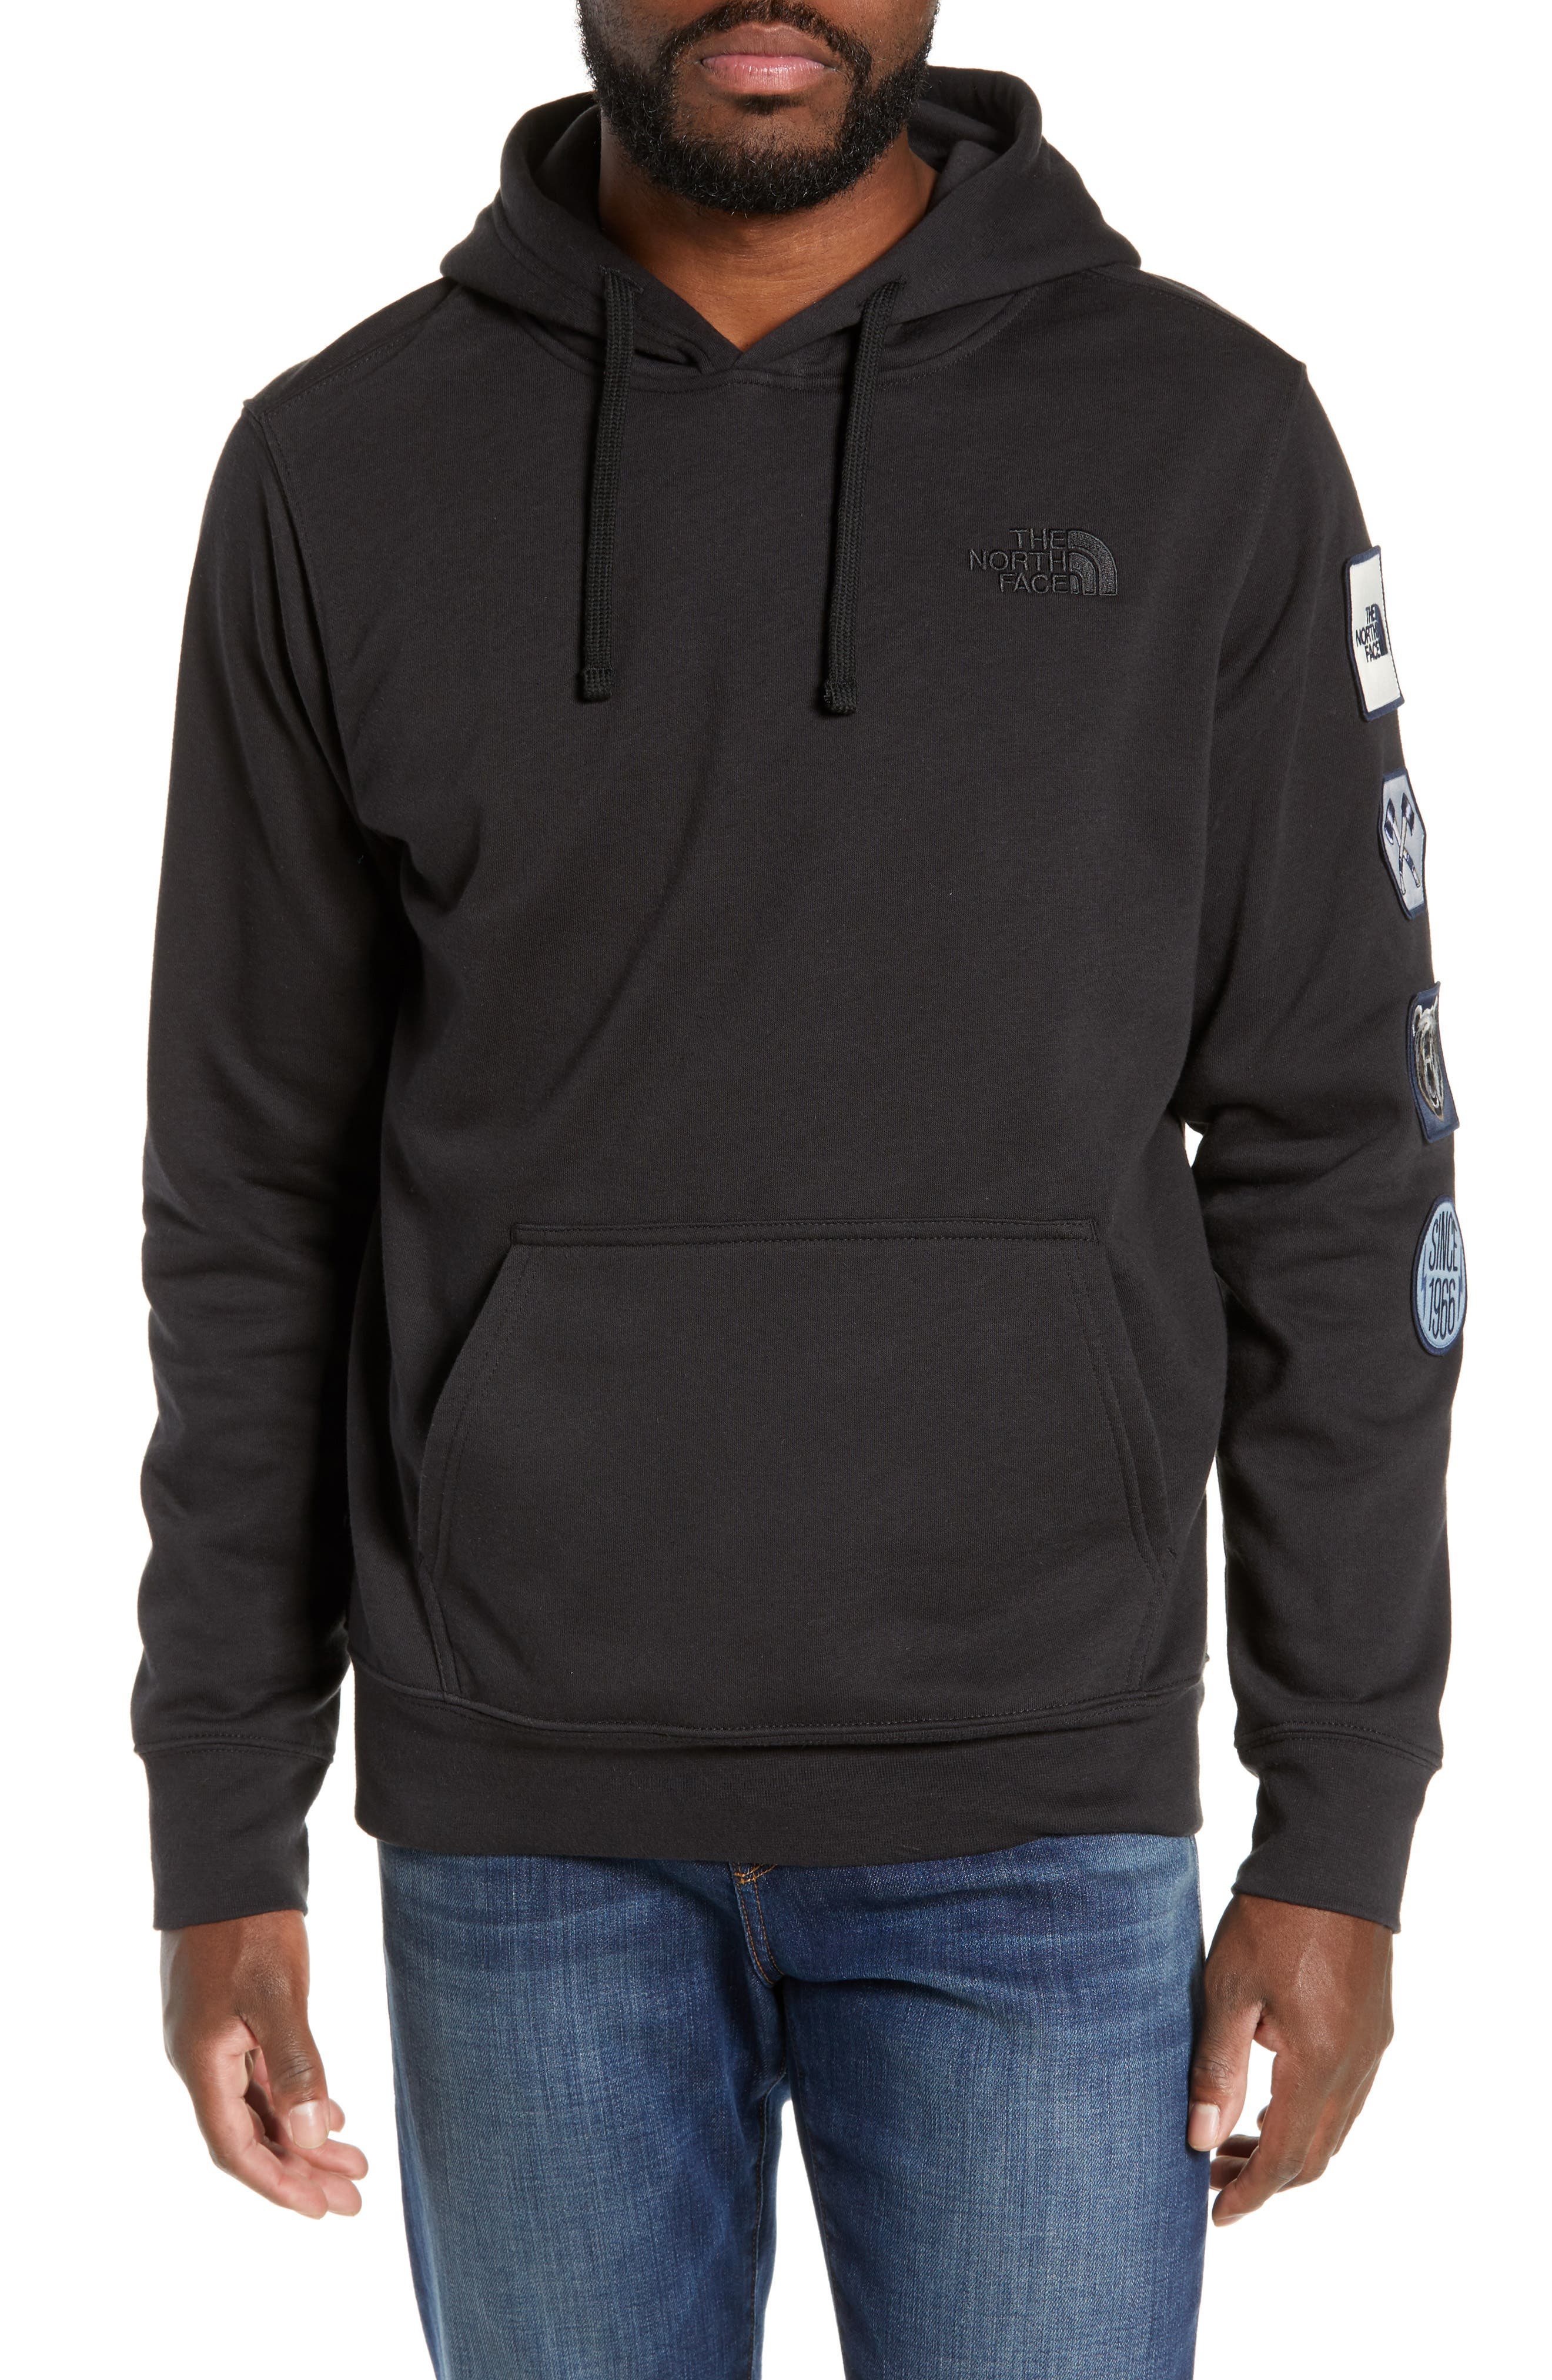 Urban Patches Hoodie,                             Main thumbnail 1, color,                             001